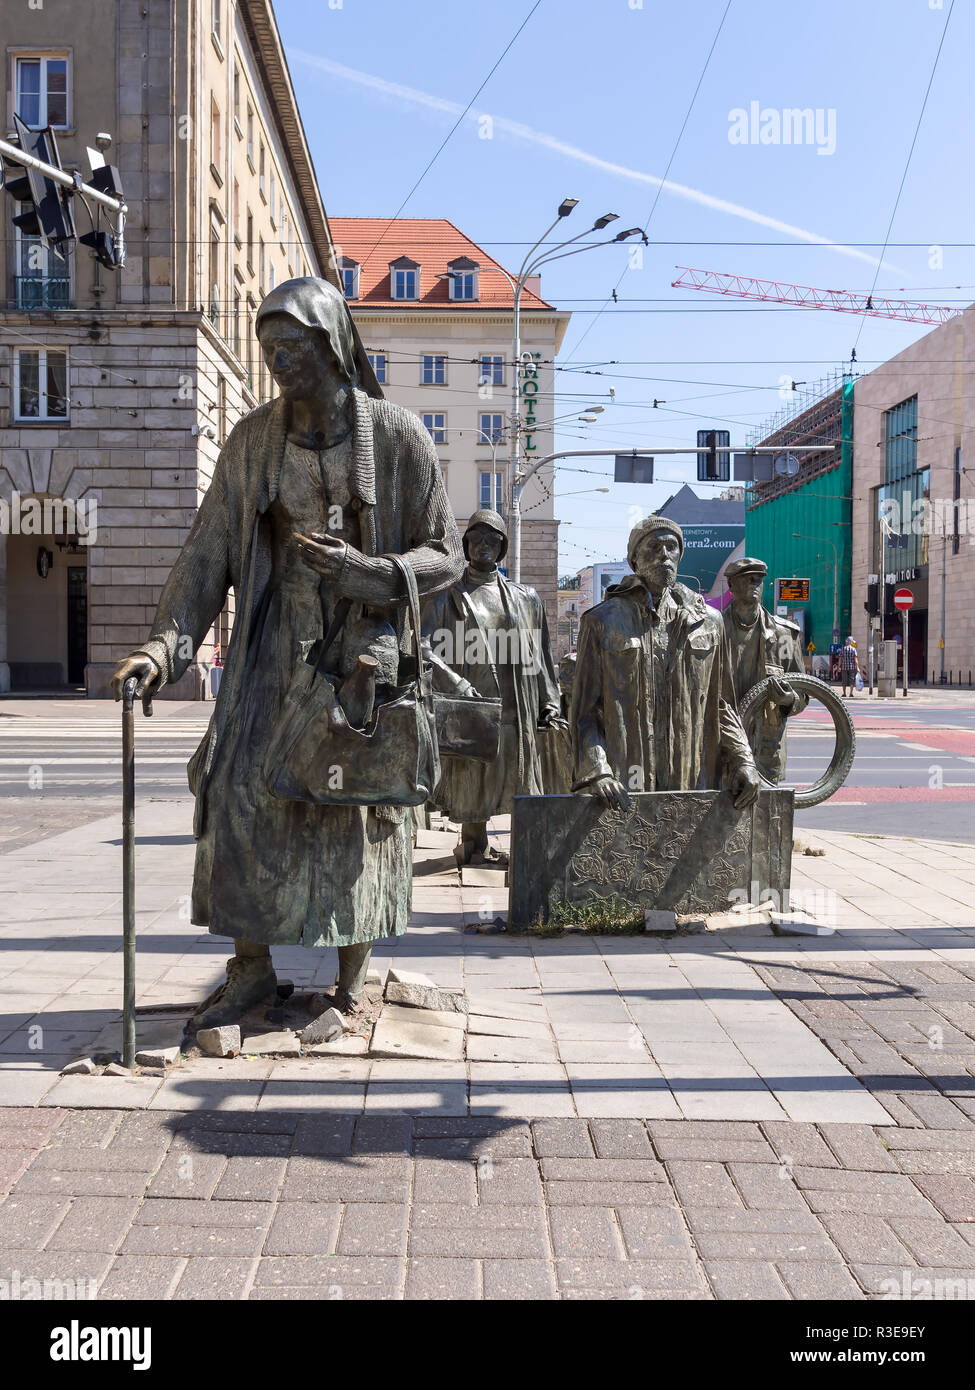 WROCLAW, POLAND - AUGUST 15, 2017: The Monument of An Anonymous Passerby - Stock Image